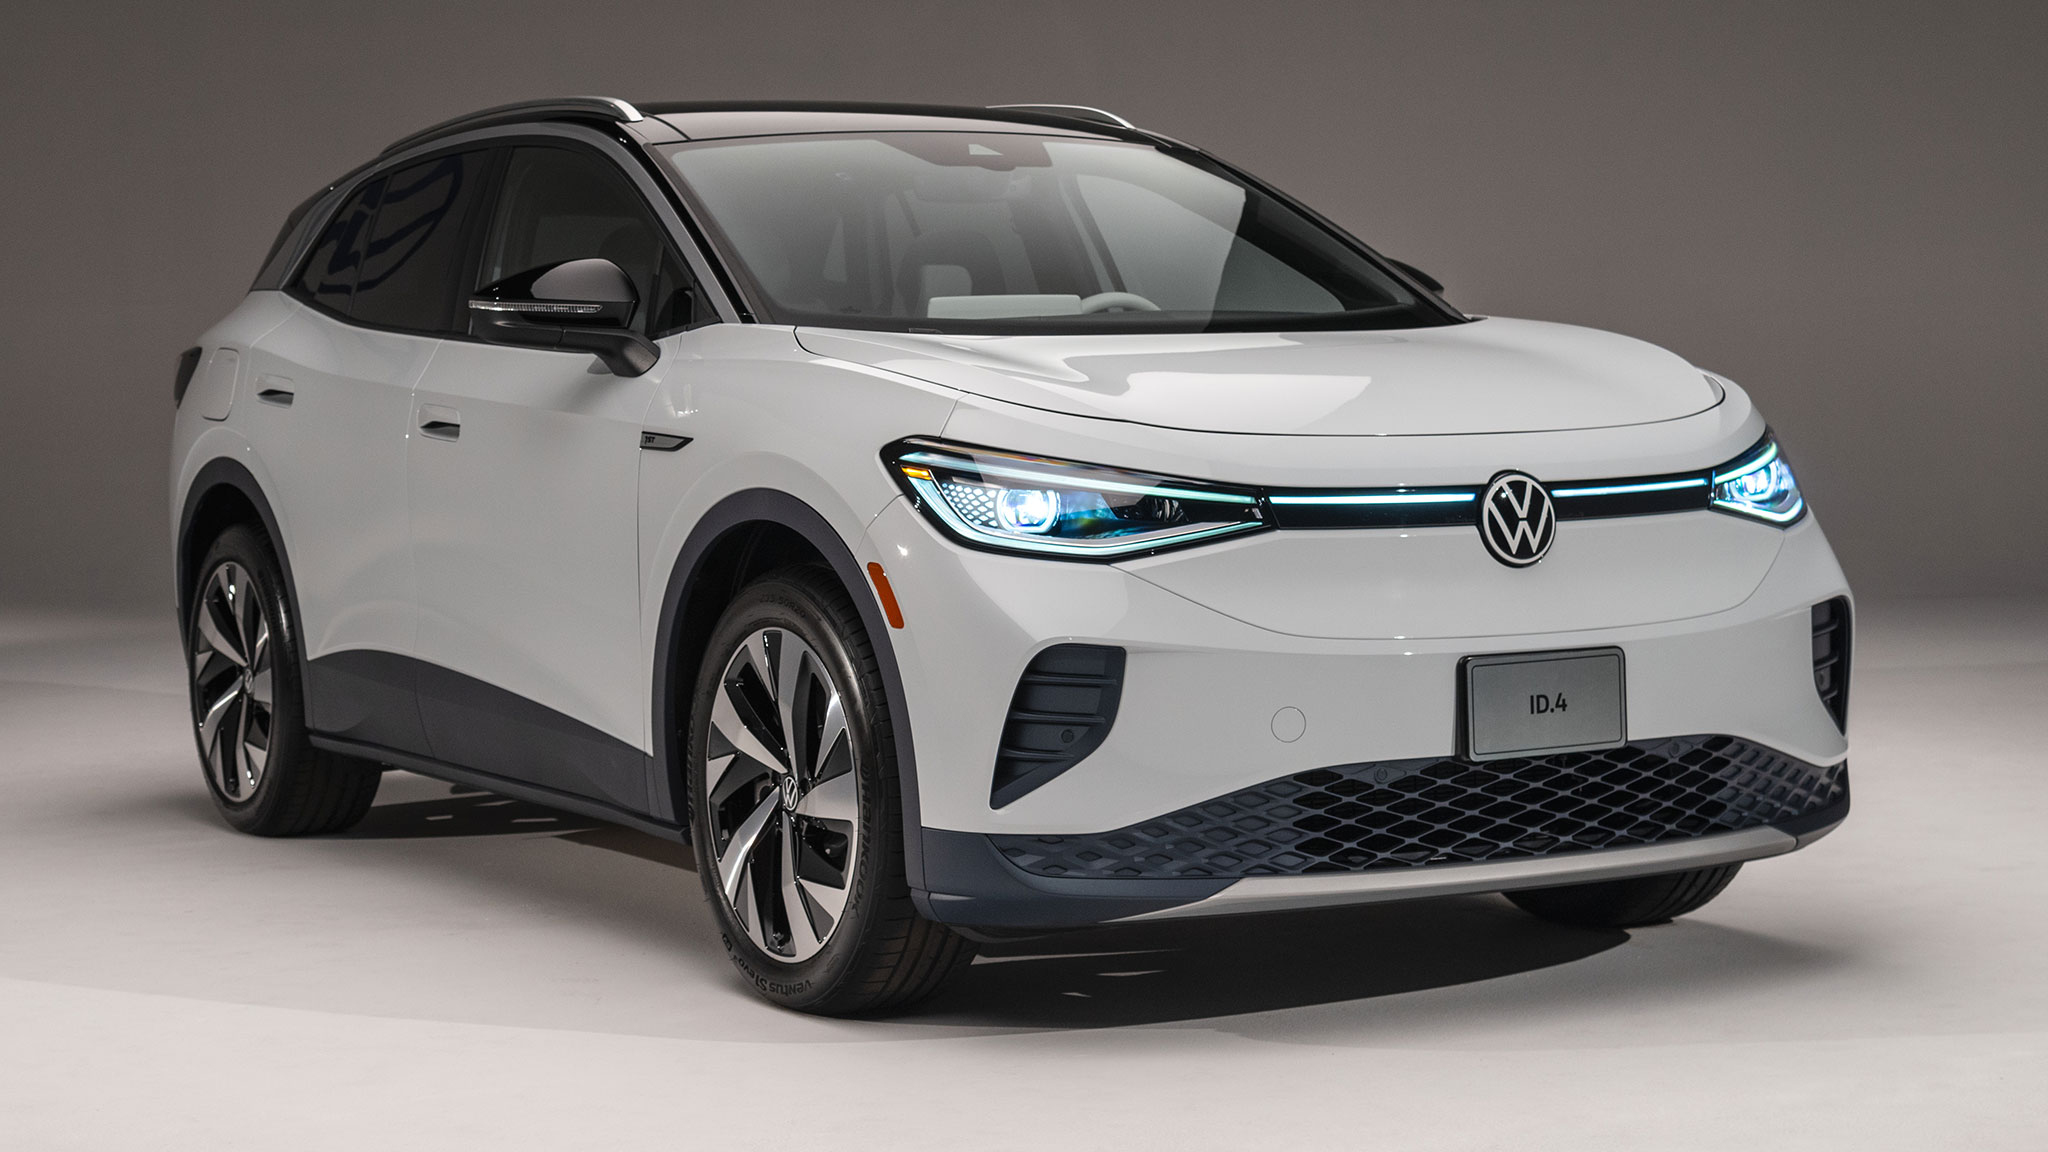 2021 Volkswagen ID.4 Owners Manual